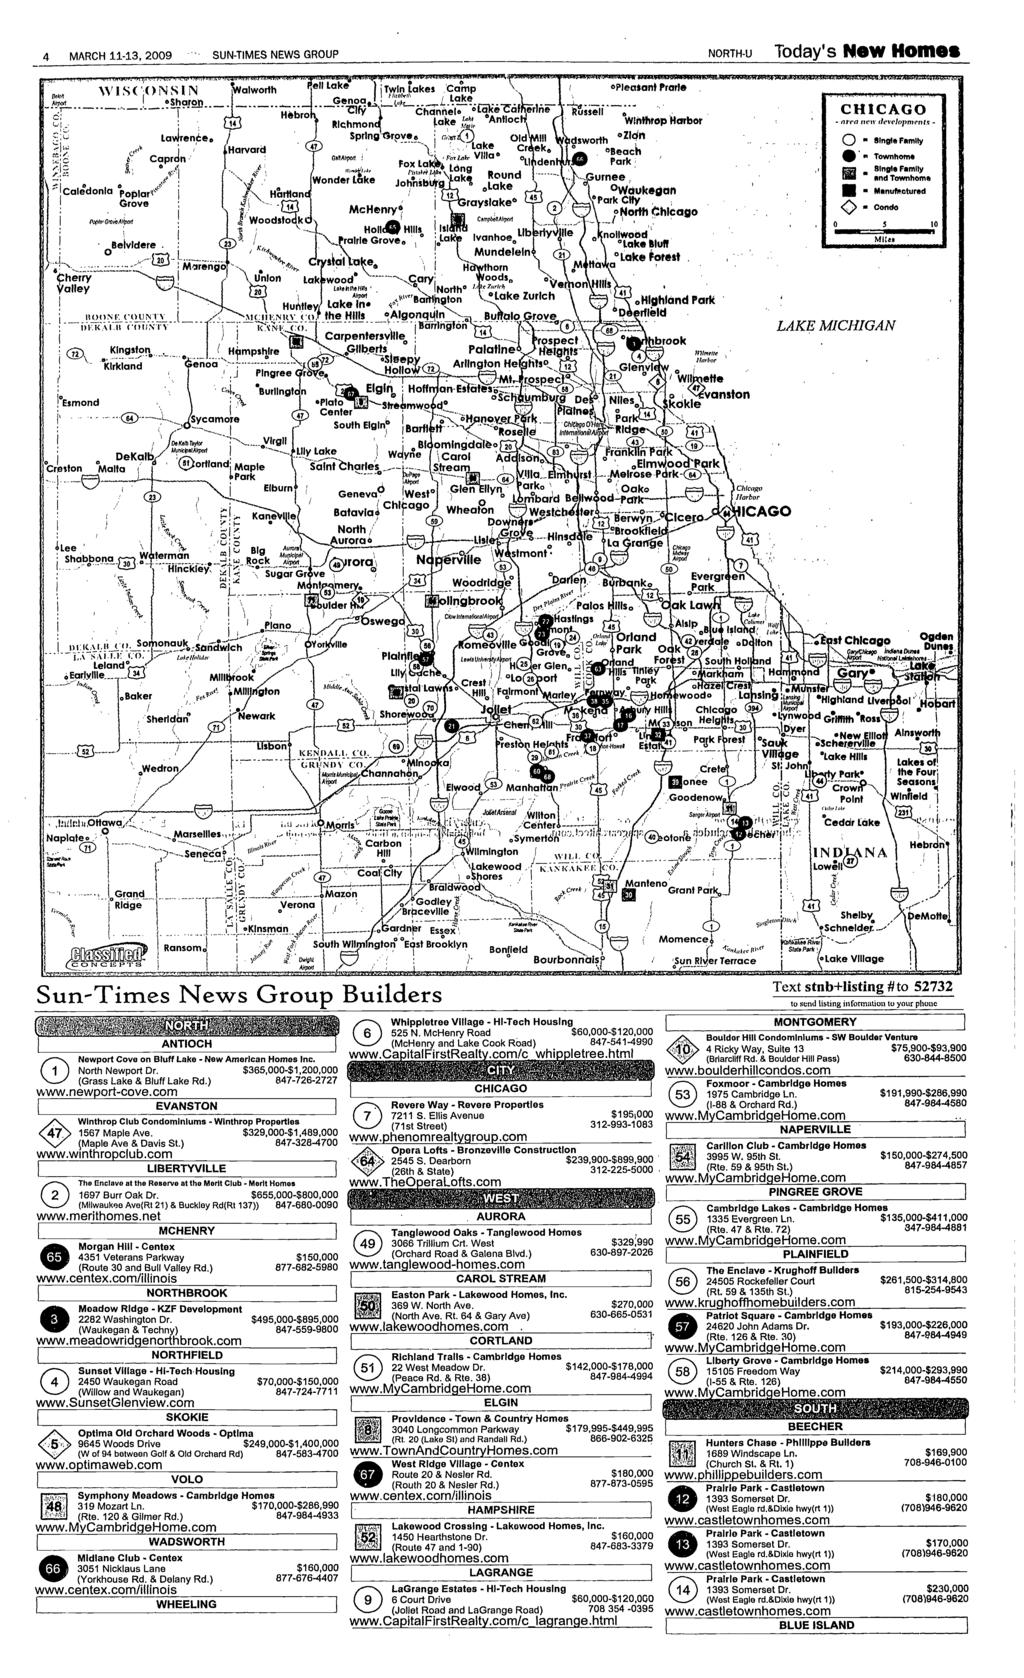 Hep Kld Spect1ator This Week Pdf 1990 Lincoln Mark Vii Wiring Diagram For Etac System 4 March 1113 2009 Suntmes News Group Northu Tday New Hme V1sonsn Krl